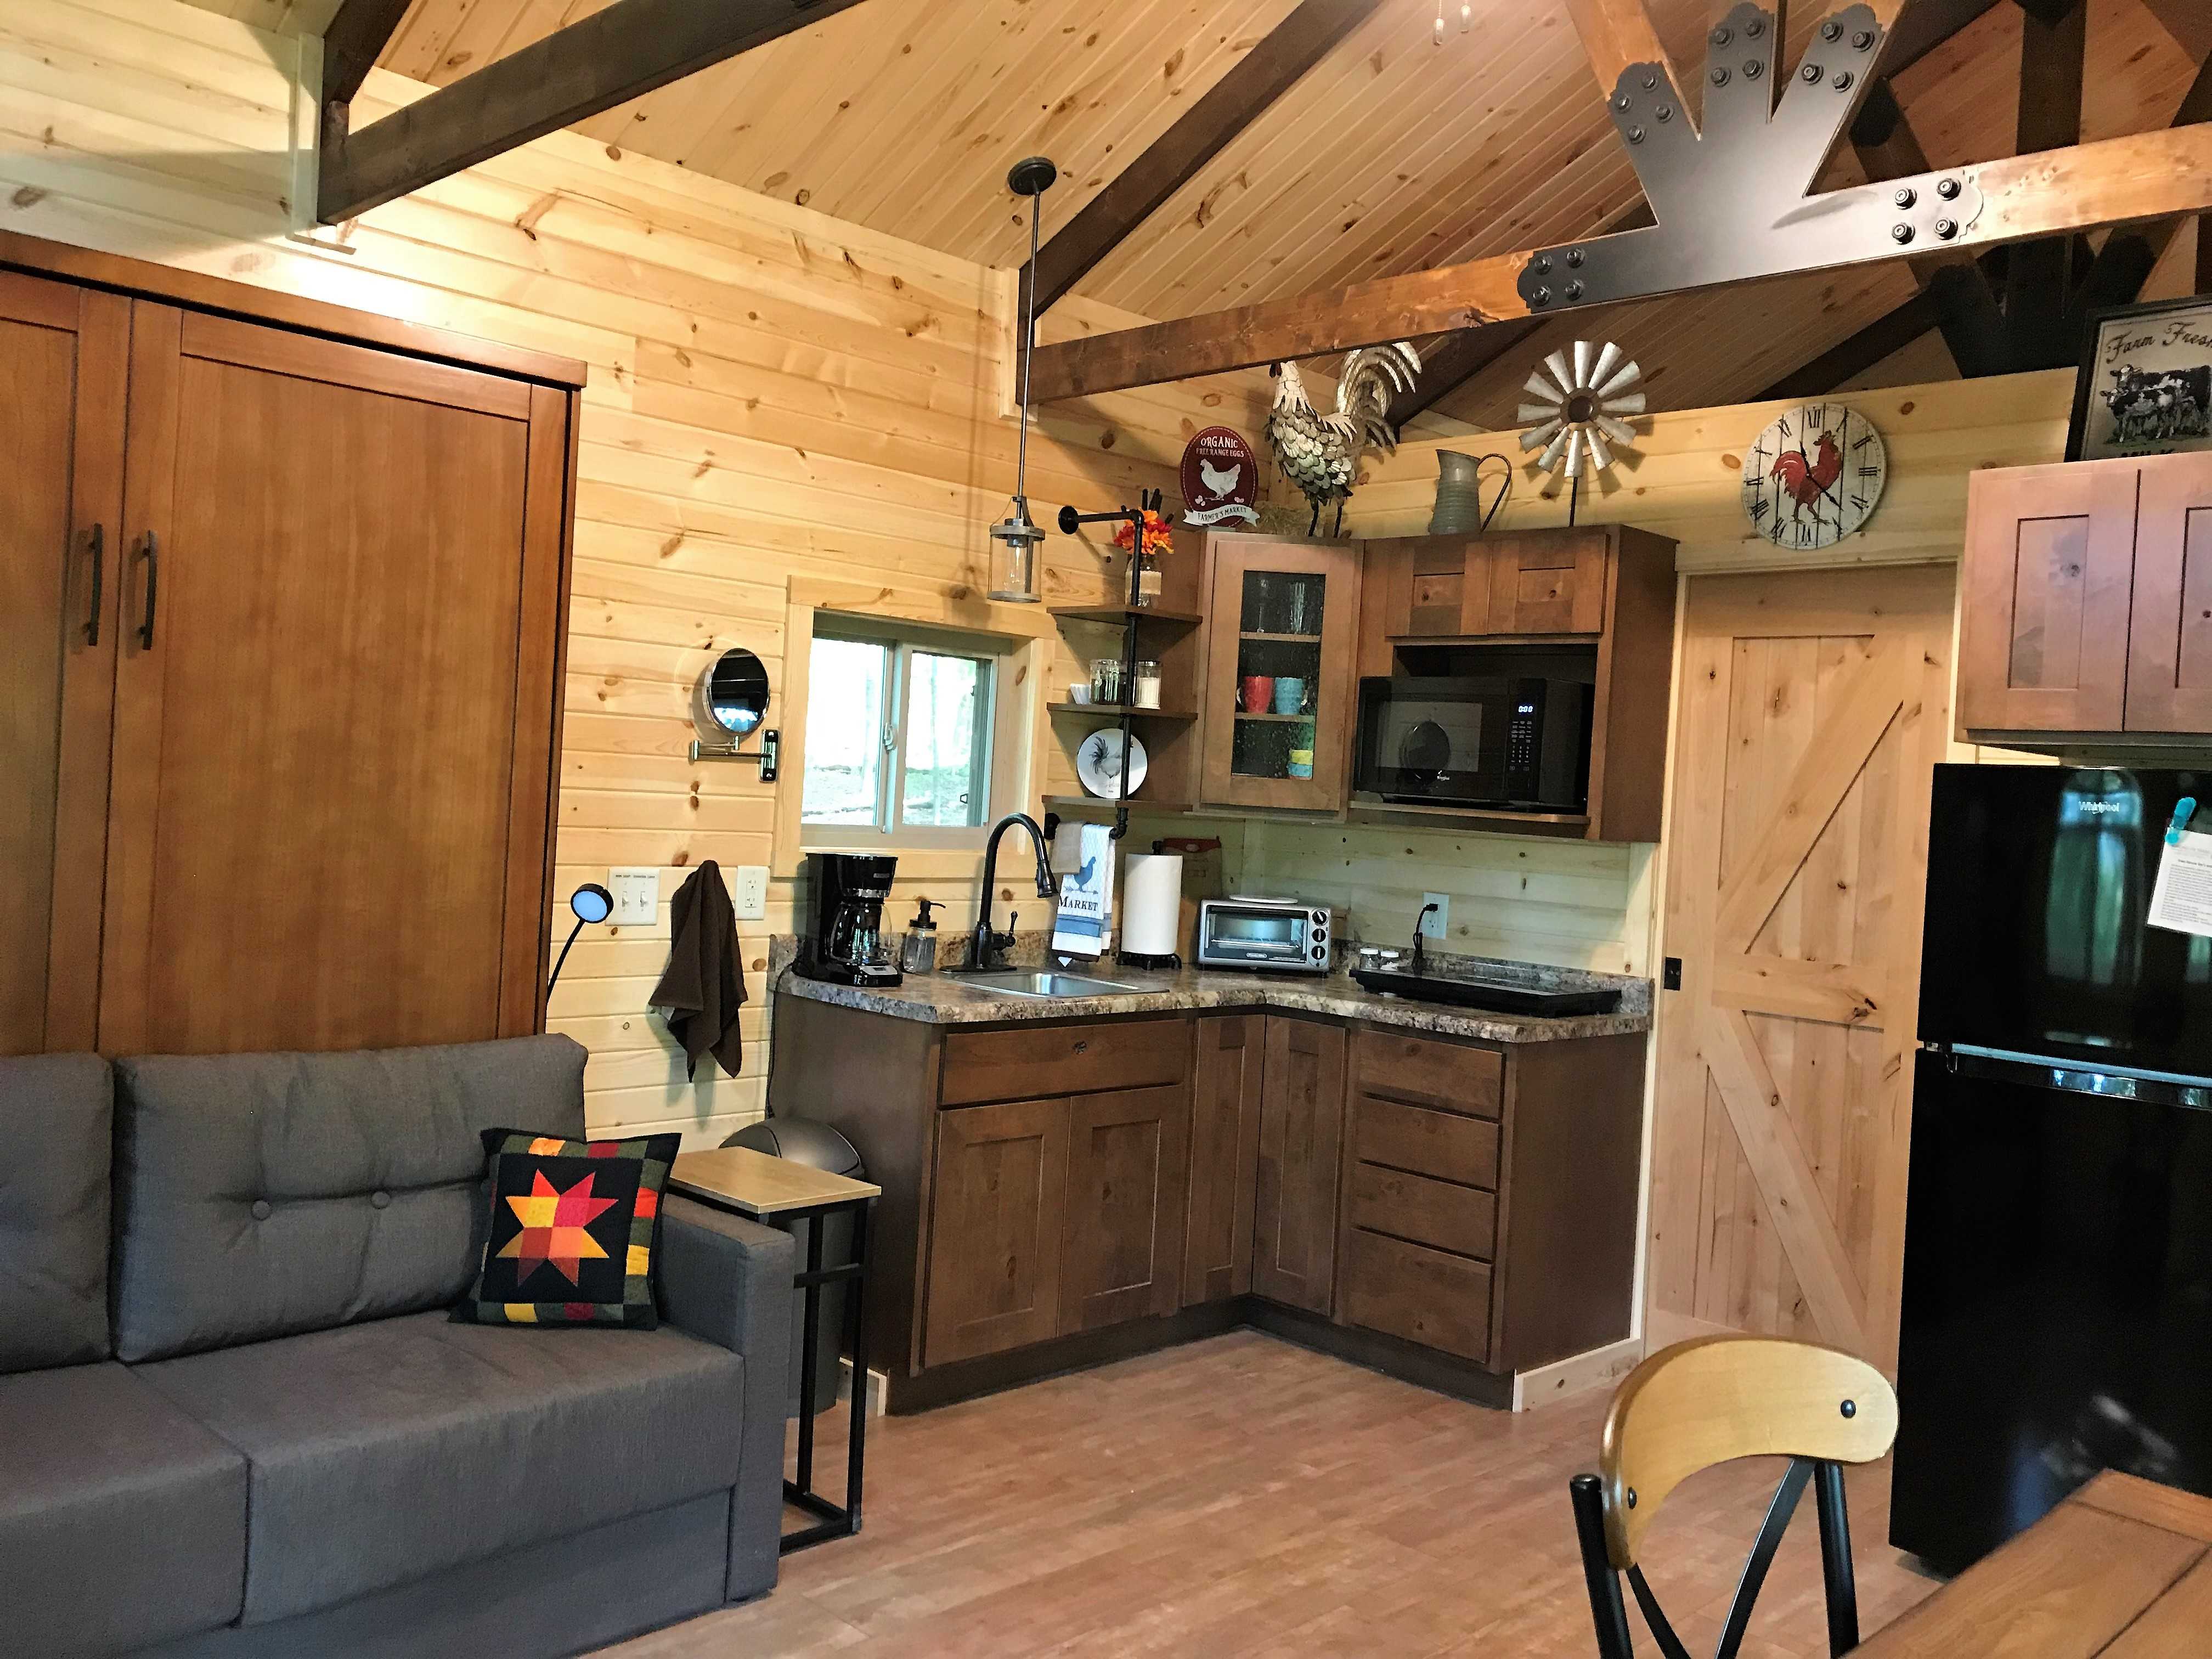 kitchen/living area - Comfy main area for relaxing, which includes a kitchen area and dining table.